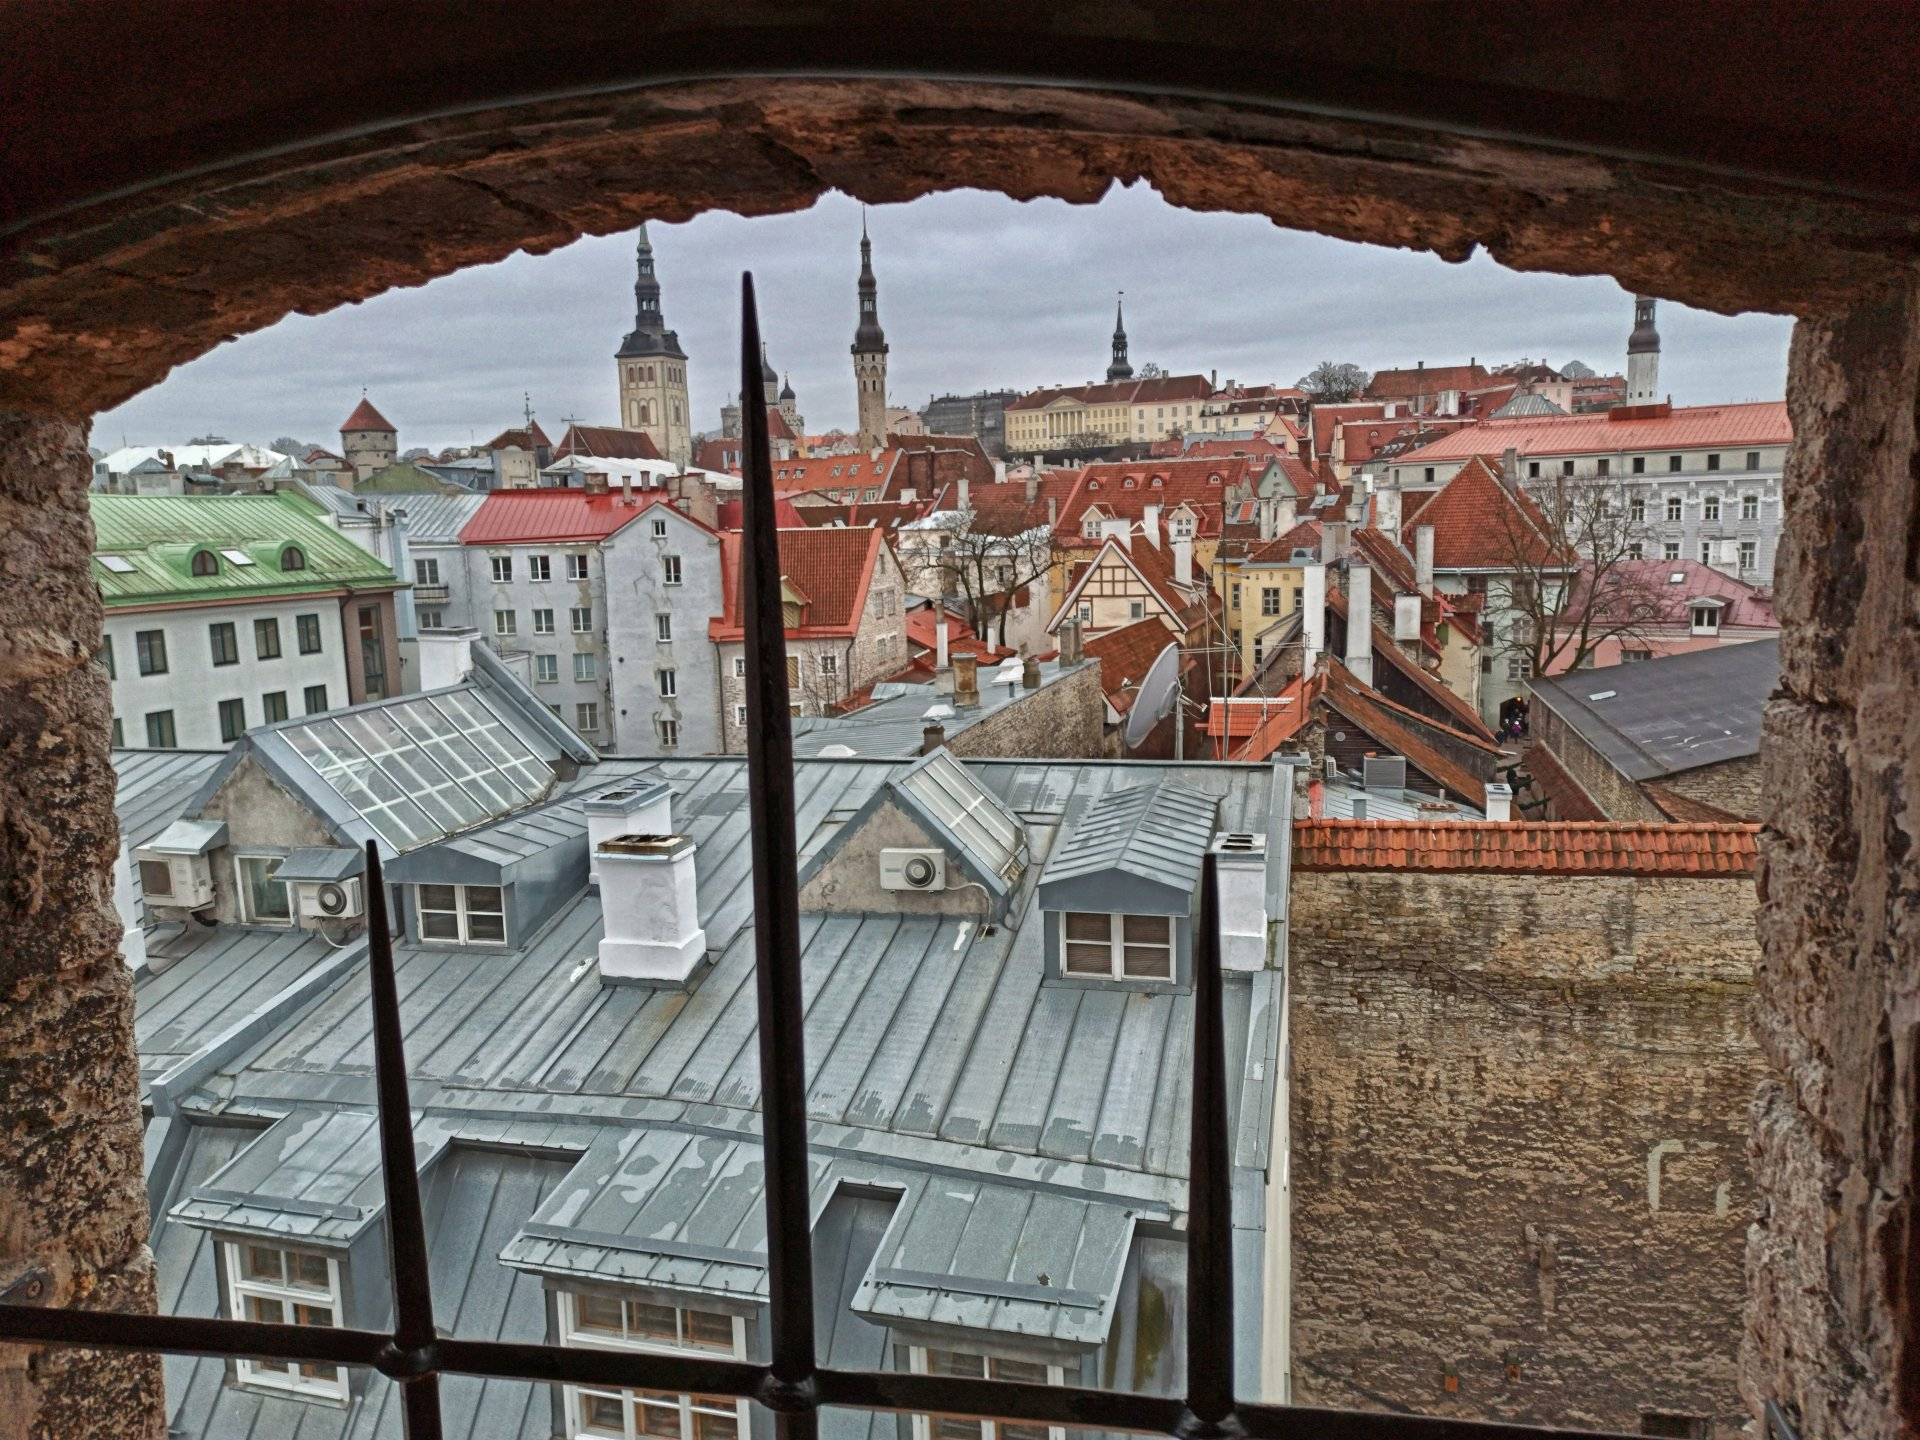 View to the roofs of Tallinn